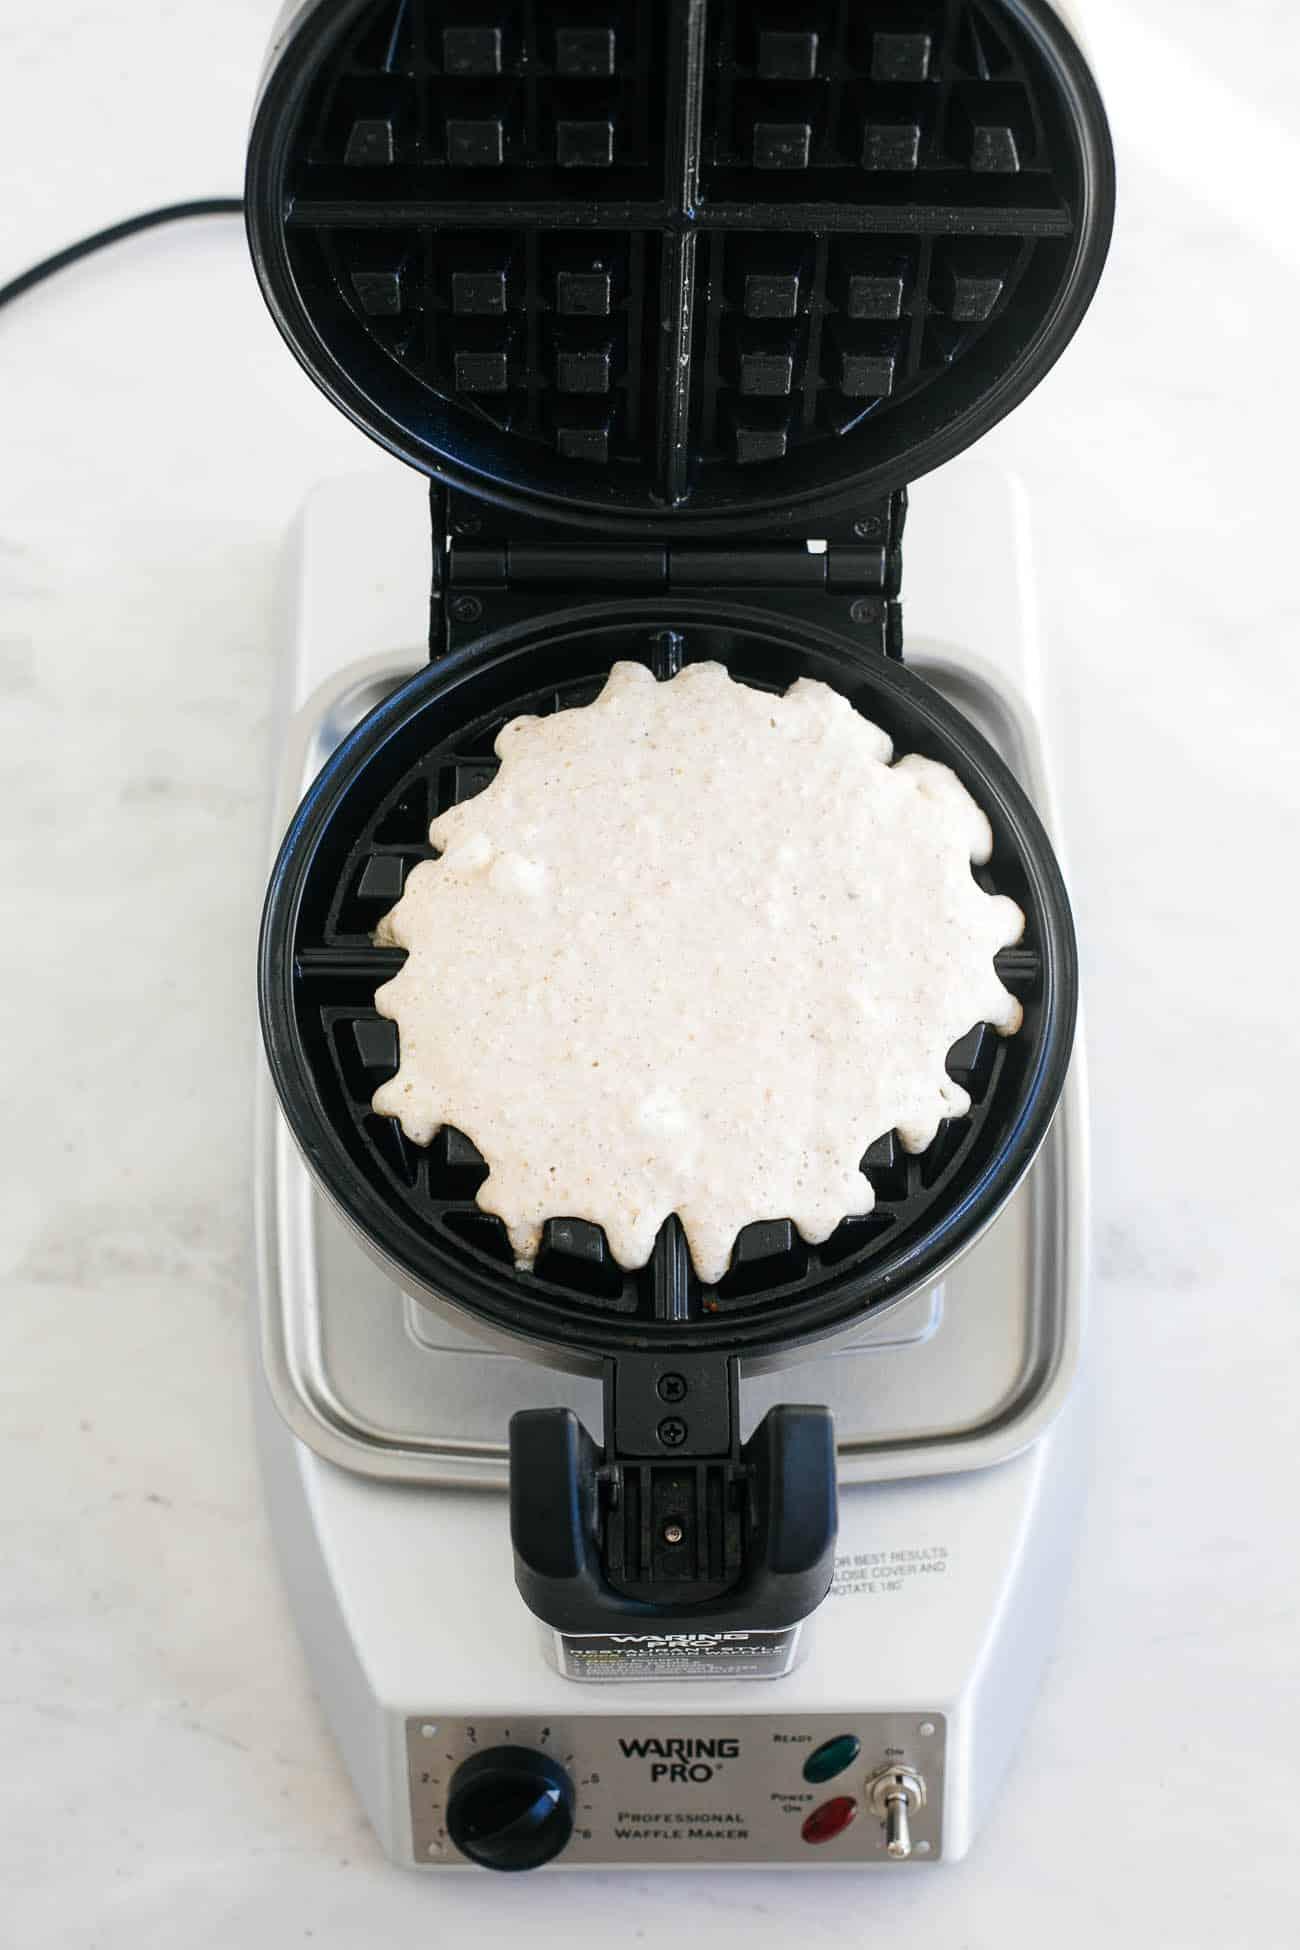 Batter going into a waffle maker.